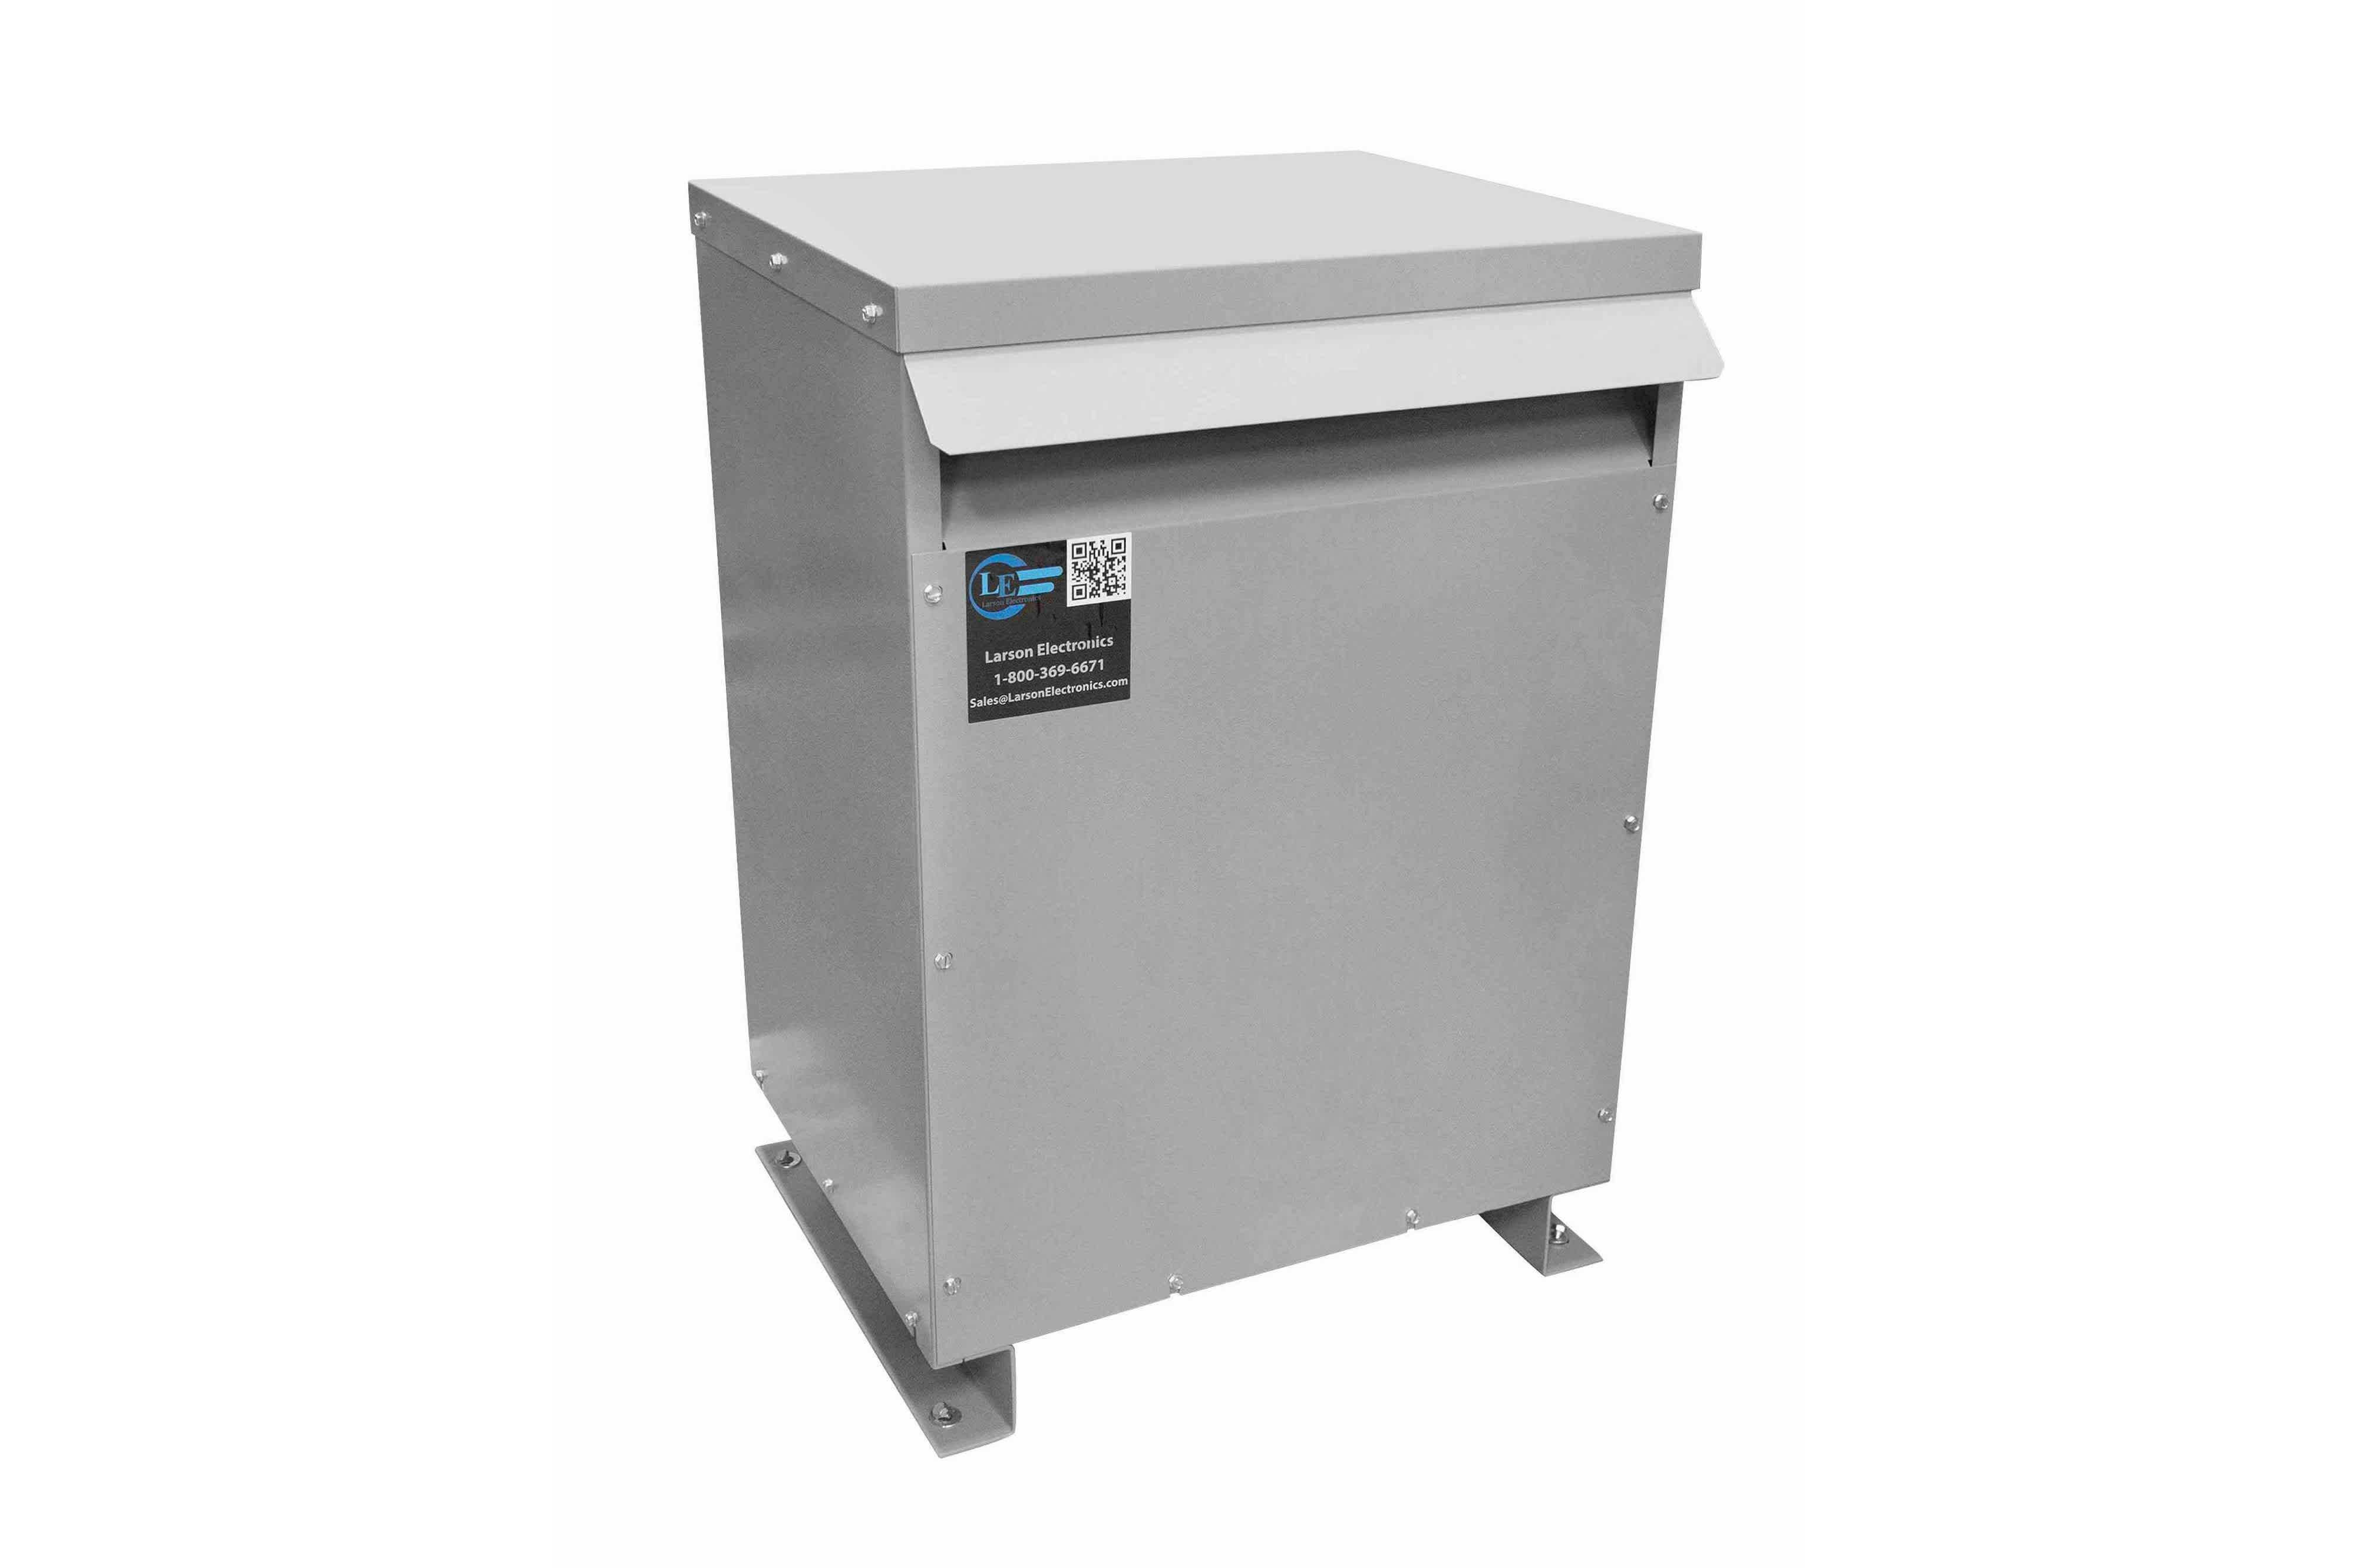 25 kVA 3PH Isolation Transformer, 208V Delta Primary, 380V Delta Secondary, N3R, Ventilated, 60 Hz